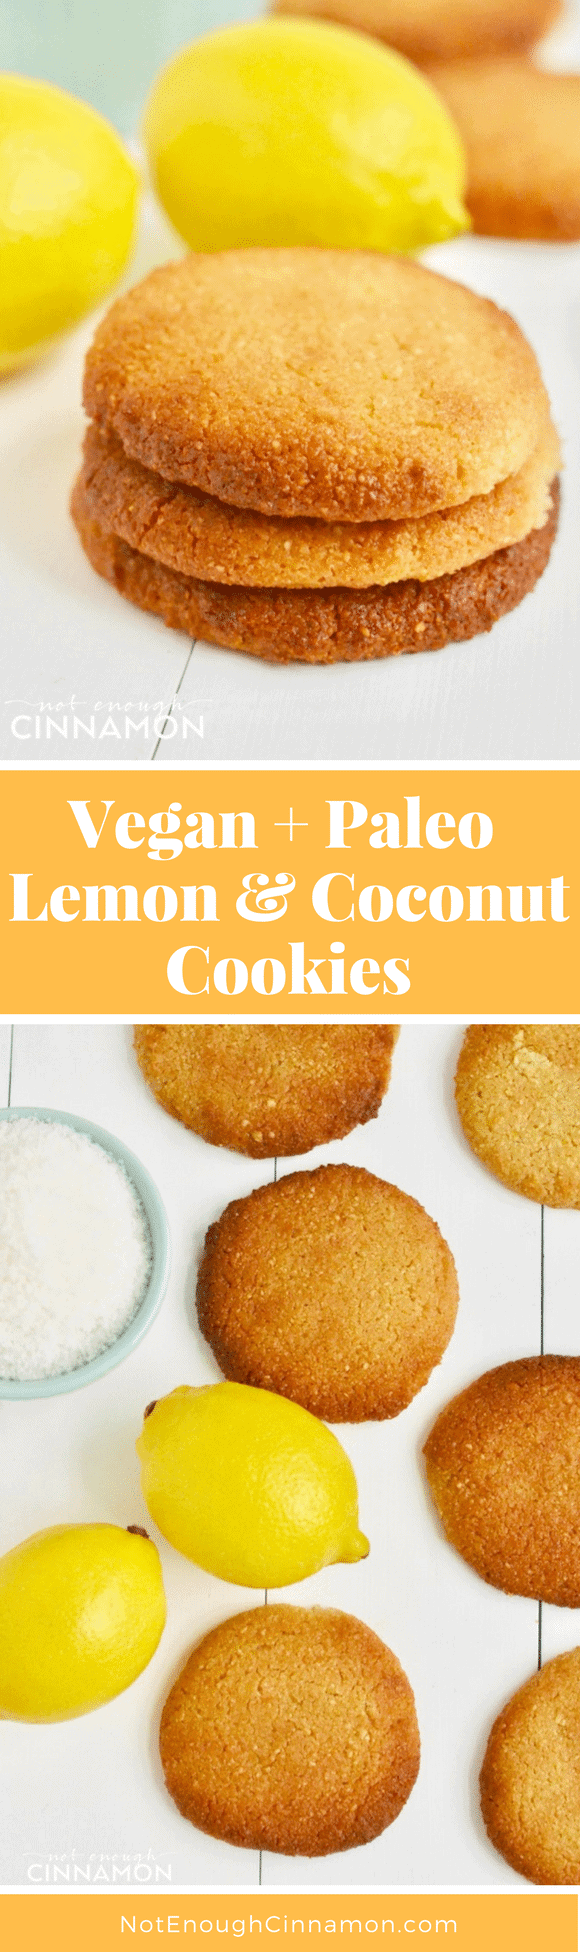 These soft, almost melt-in-your-mouth cookies are bursting with lemon and coconut flavors. They are very easy to make and come together quickly. They are also vegan, free from refined sugar and paleo-approved #refinedsugarfree, #paleodesserts, #vegandesserts, #healthycookies, #realfood, #healthybaking.